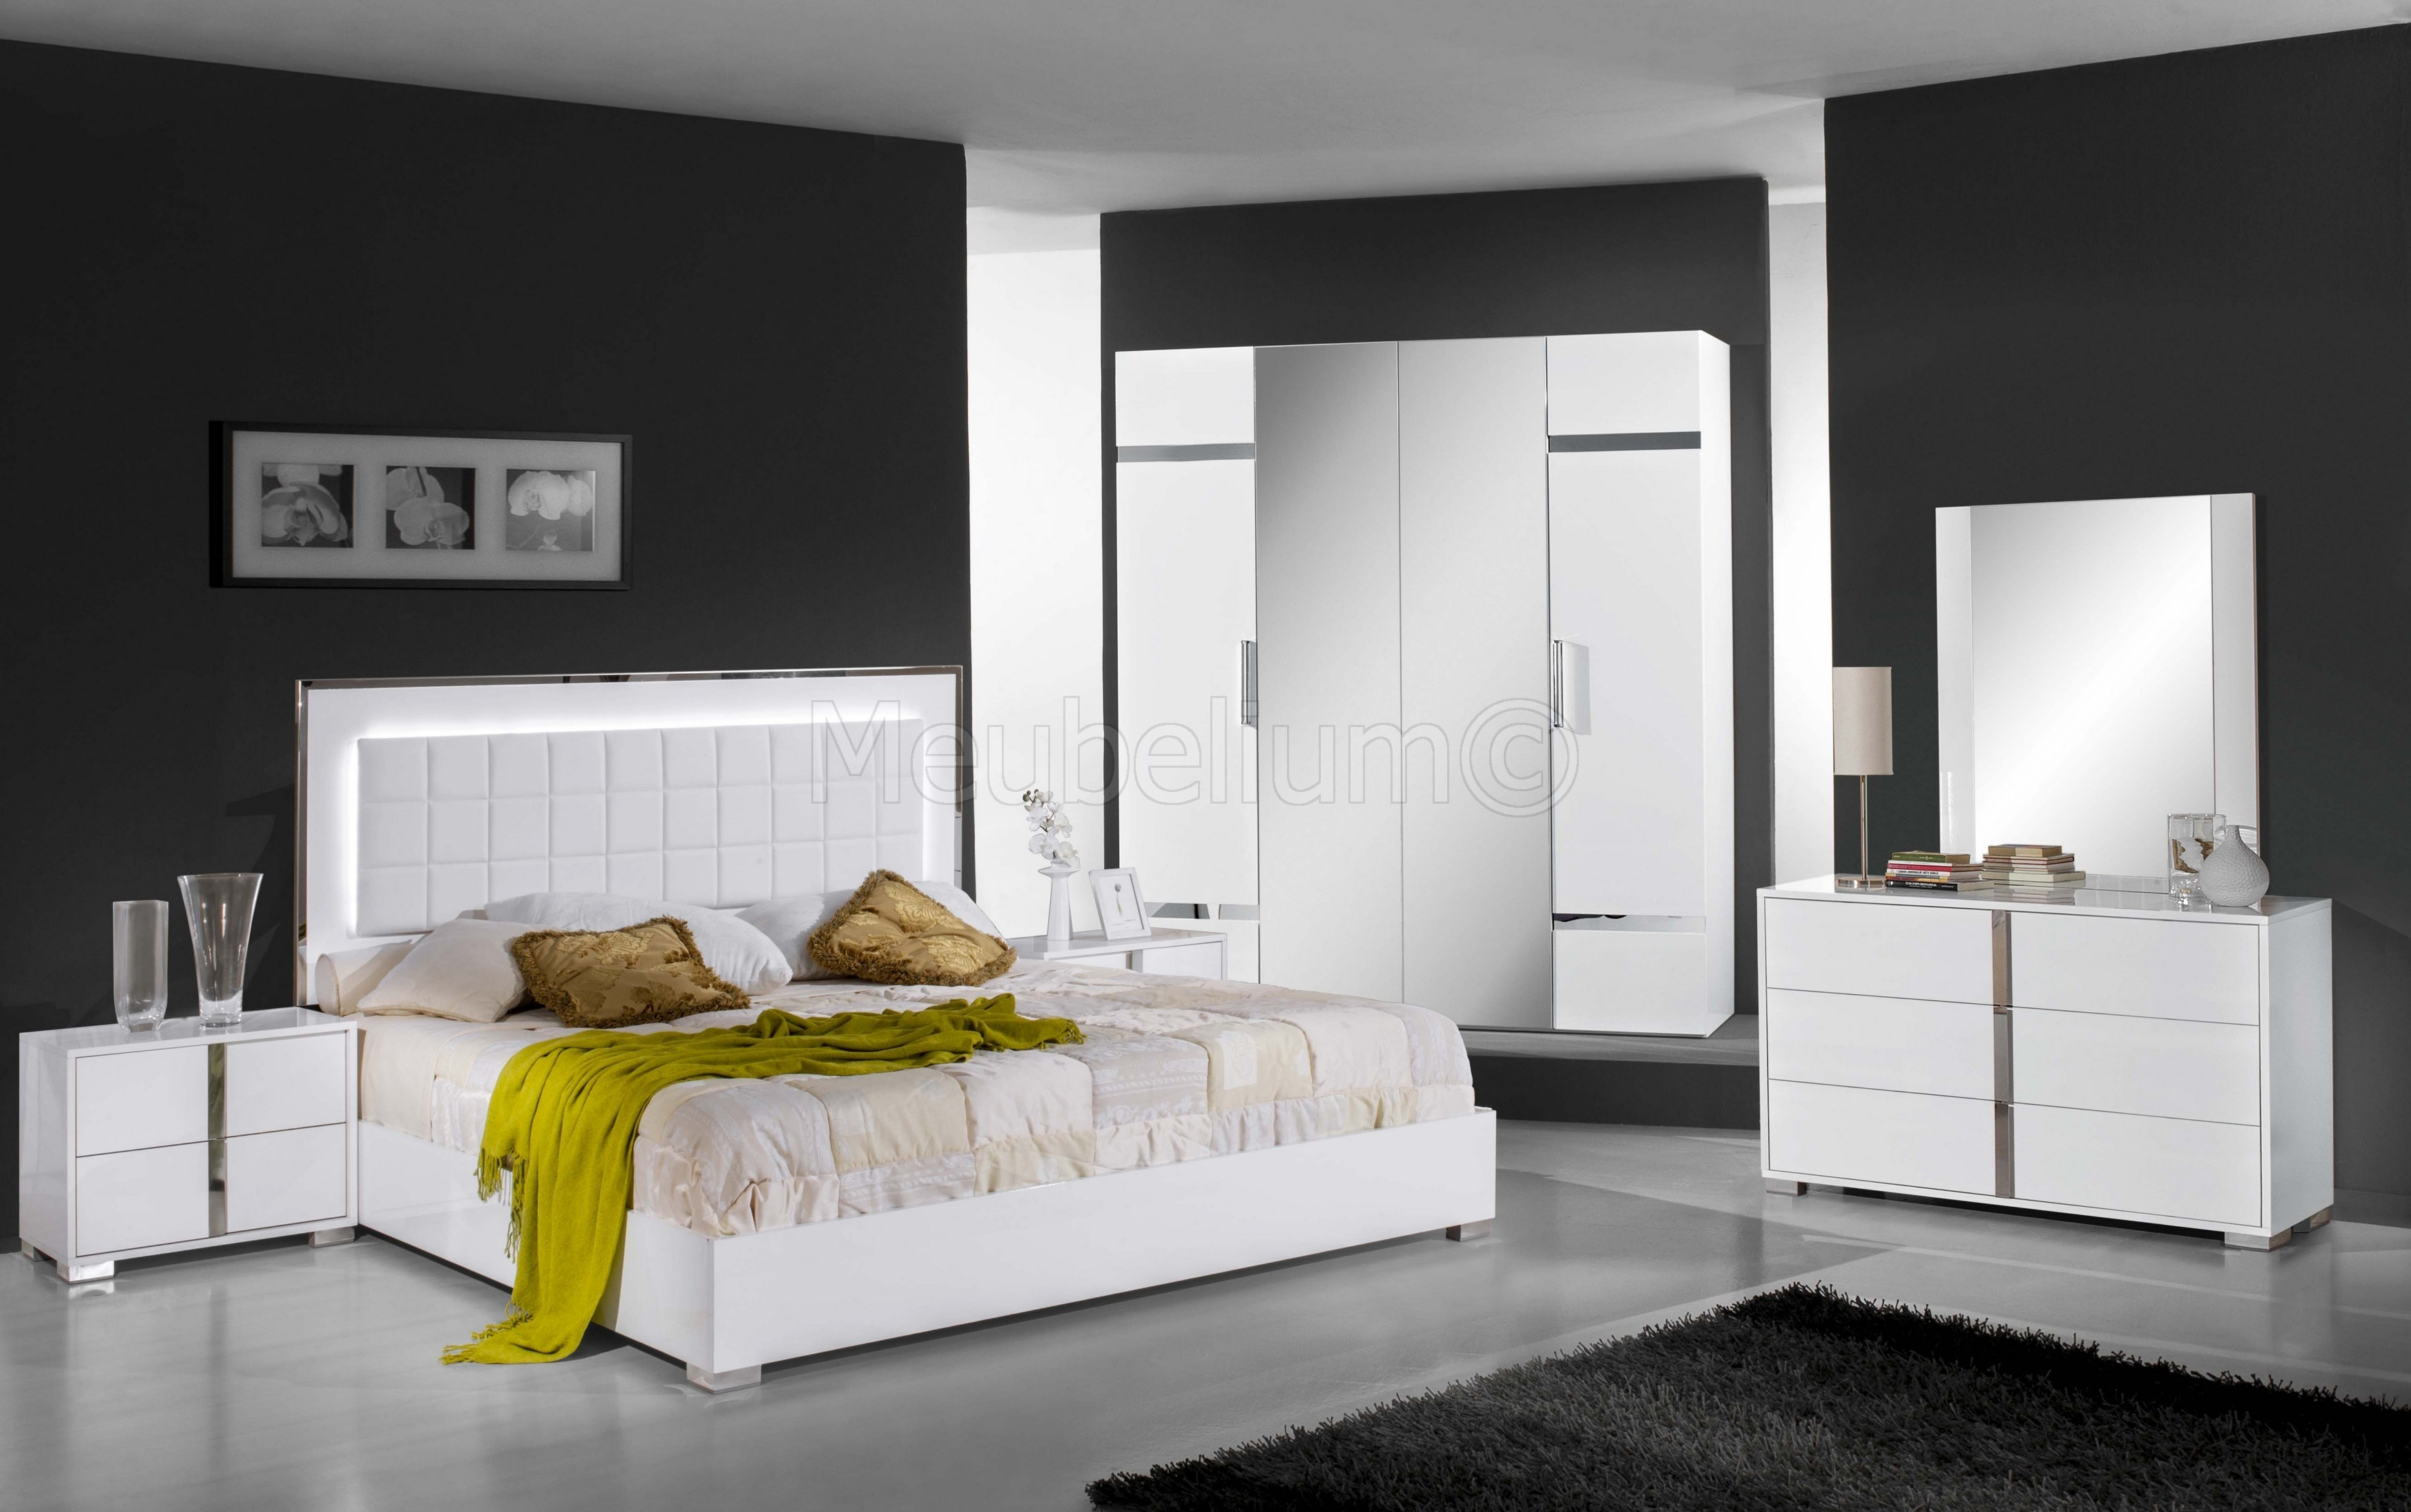 Tips to Create Meuble Chambre De Qualité